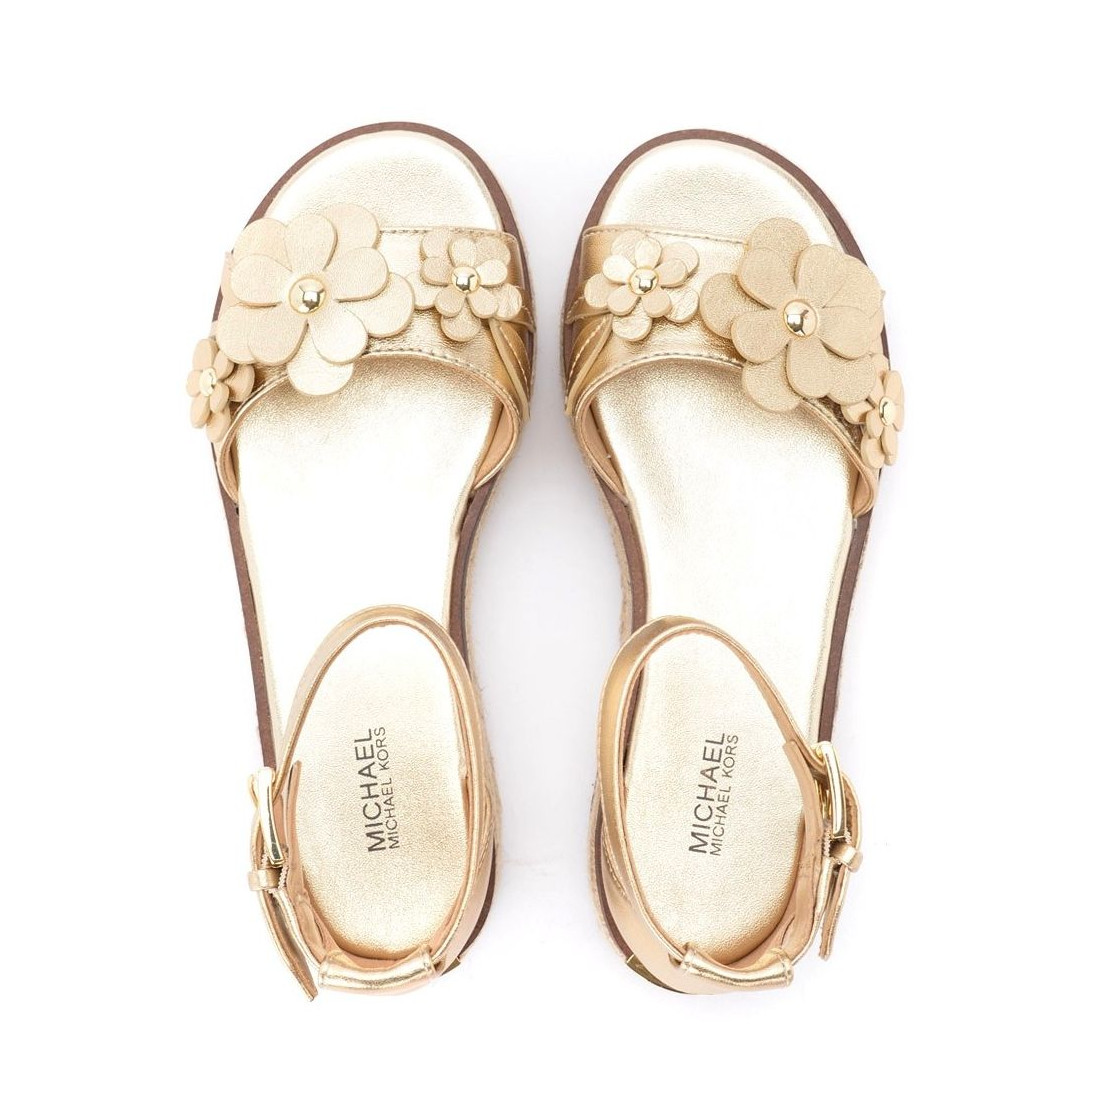 sandals woman michael kors 40s0flfa1m740 7306